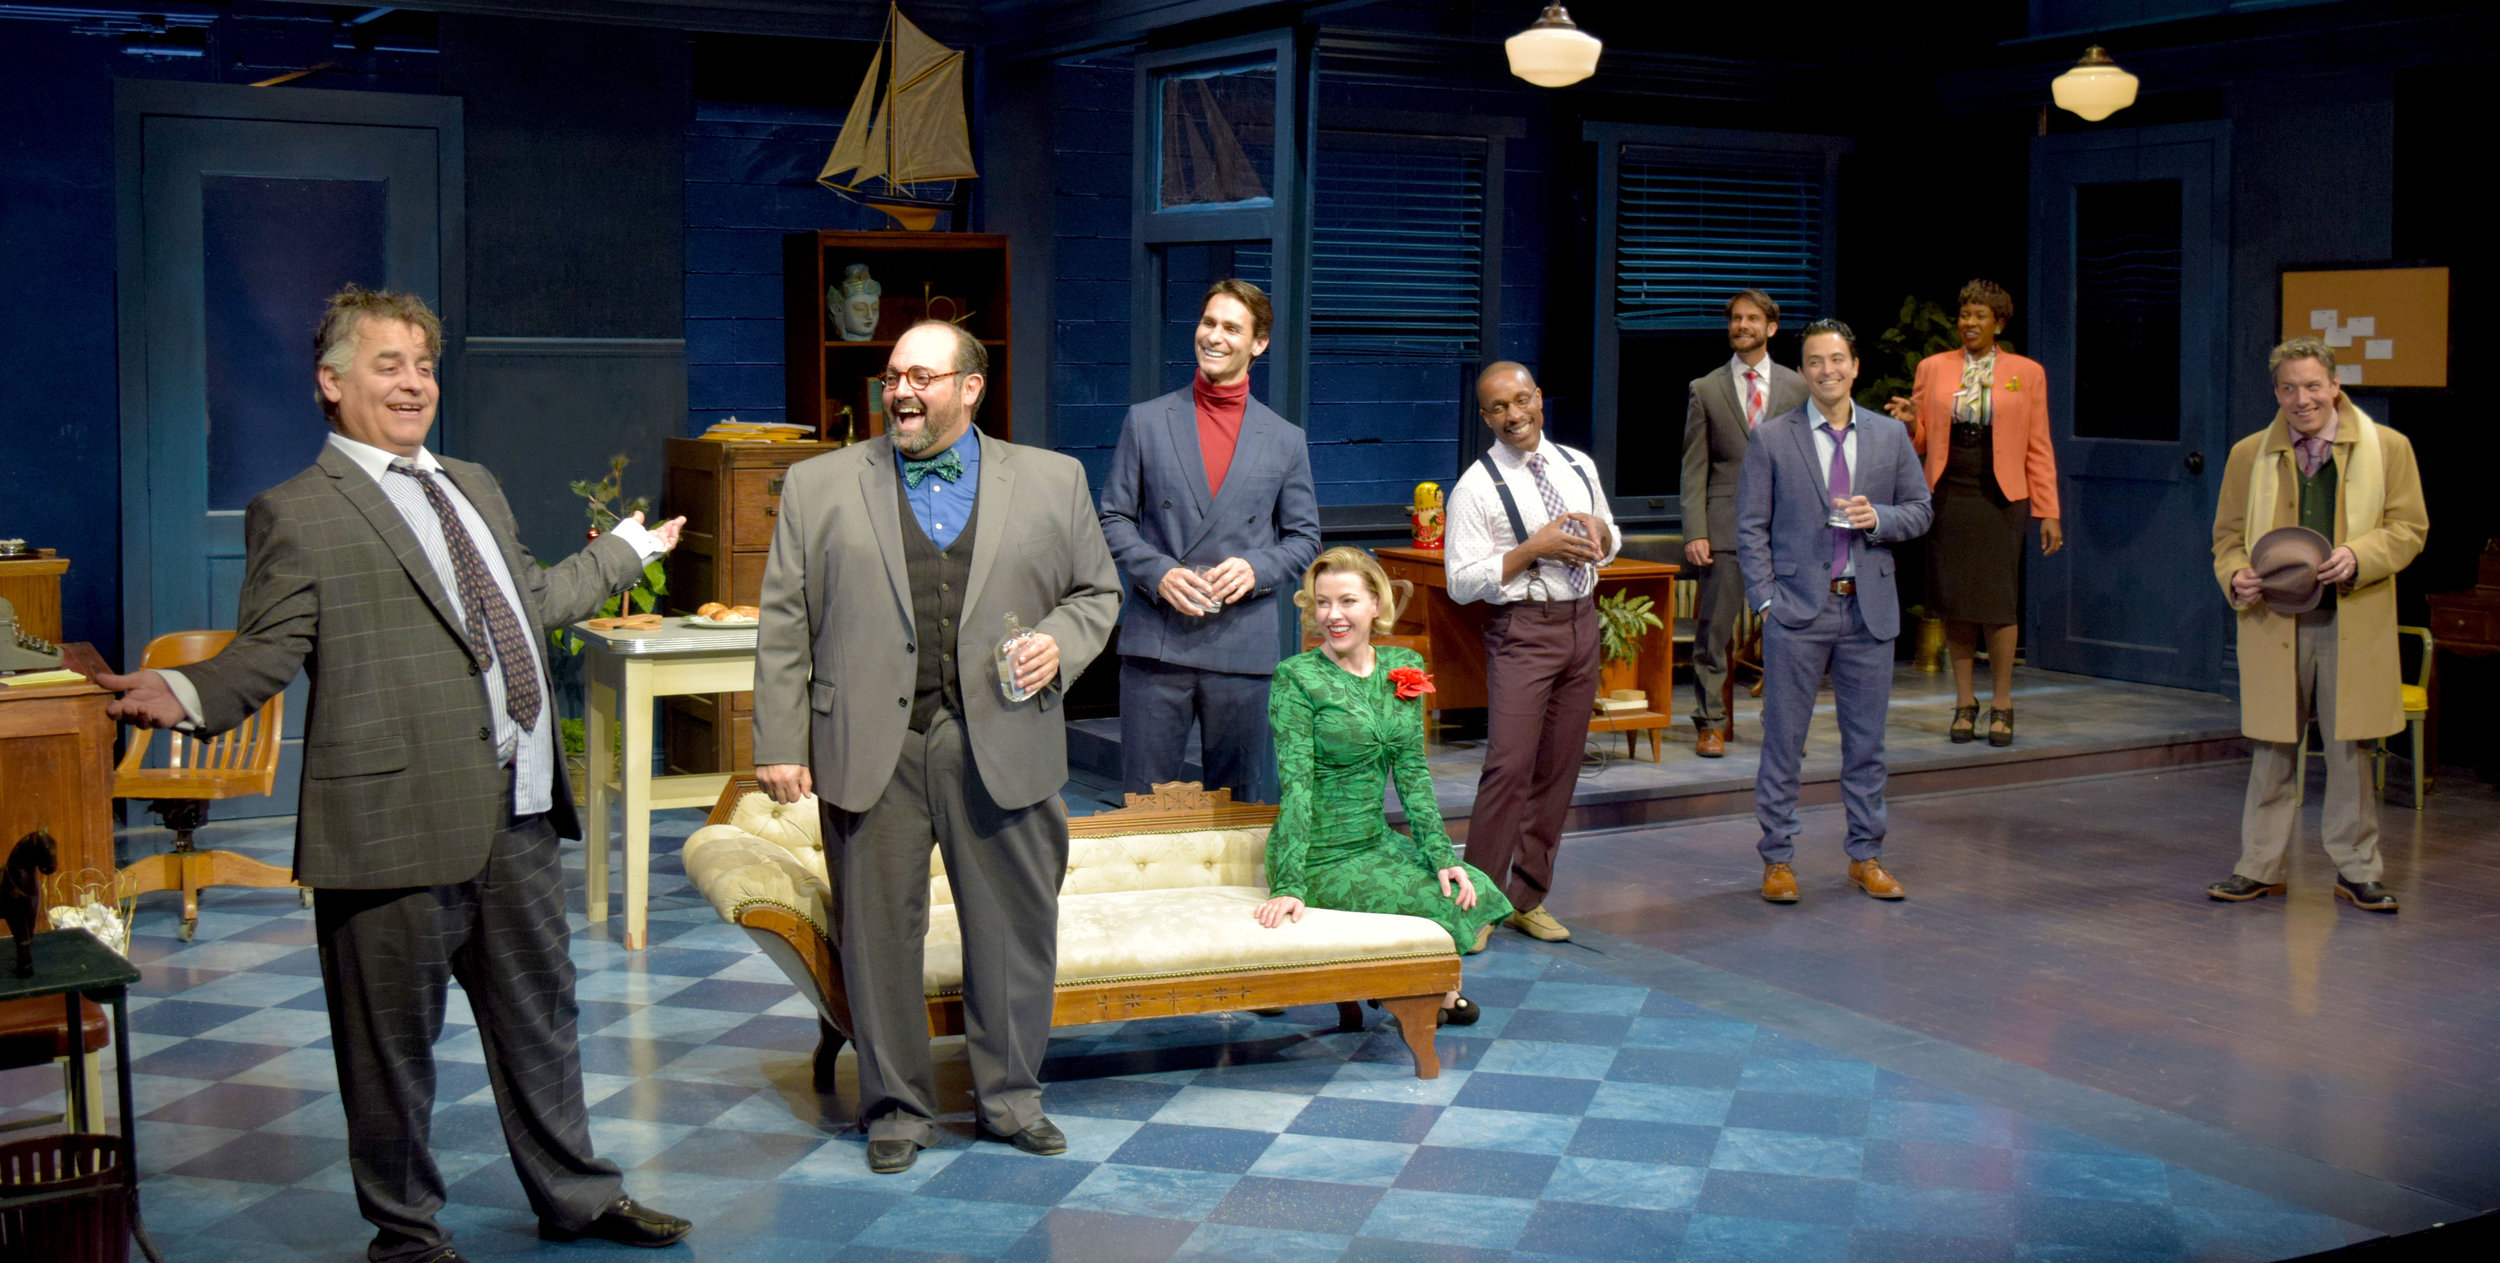 Max (Pat Towne), Val (Roland Rusinek), Milt (Ty Mayberry), Helen (Jessica Joy), Kenny (Cornelius Jones, Jr.), Lucas (Jason Grasl), Ira (Jeff Campanella), Carol (LaNisa Renee Frederick), and Brian (John Ross Bowie) in Laughter on the 23rd Floor at the Garry Marshall Theatre.